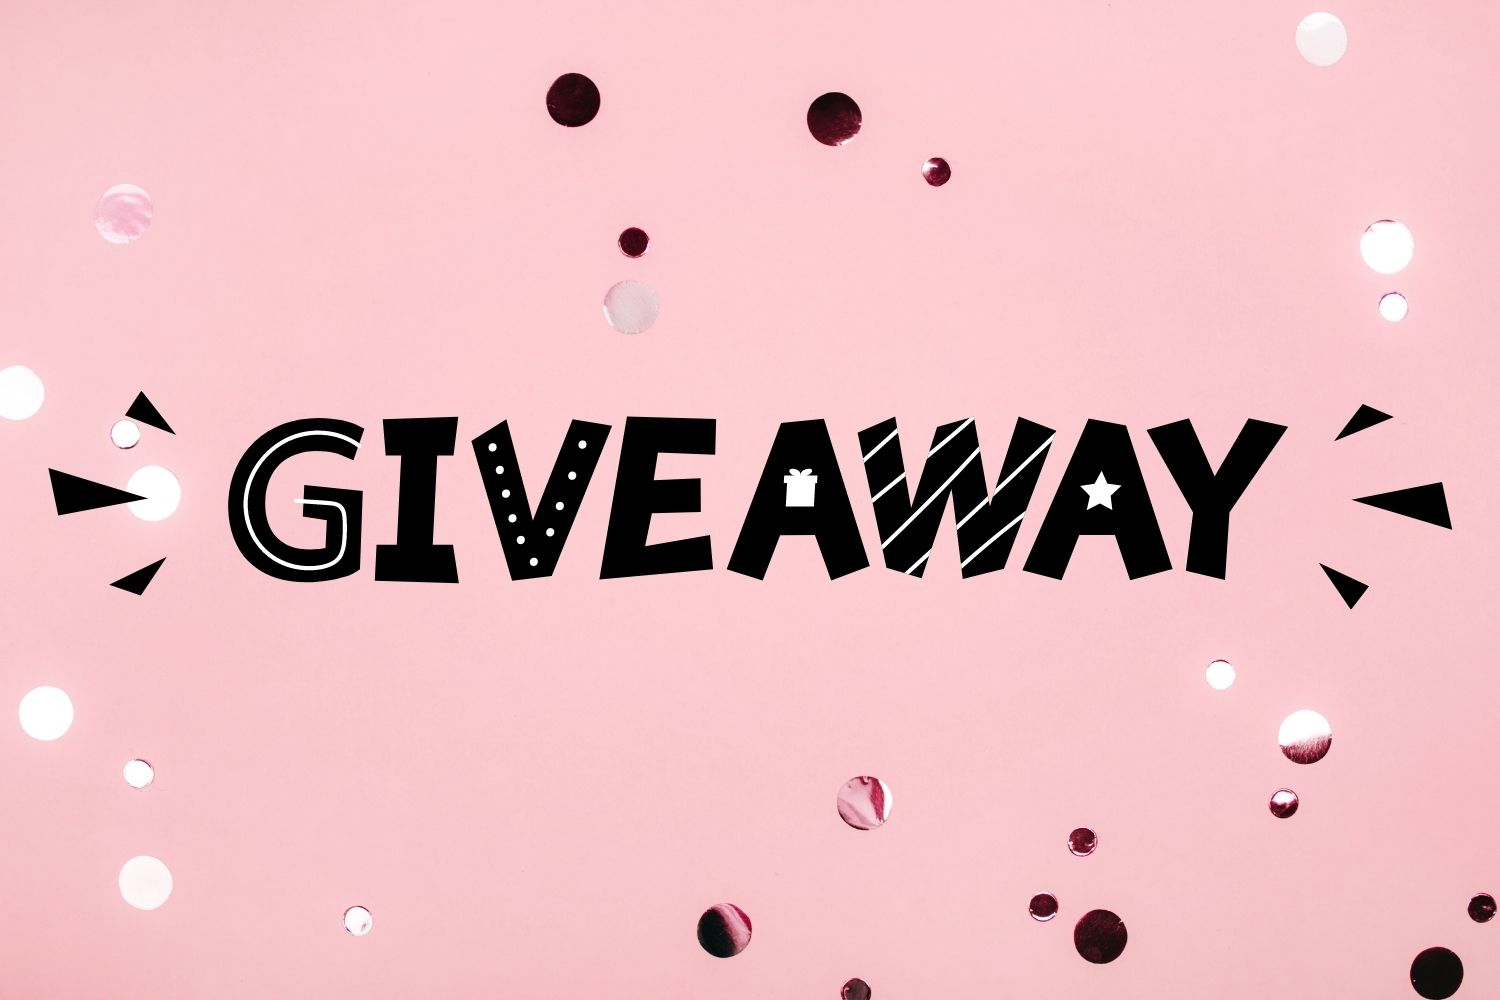 Giveaway featured image